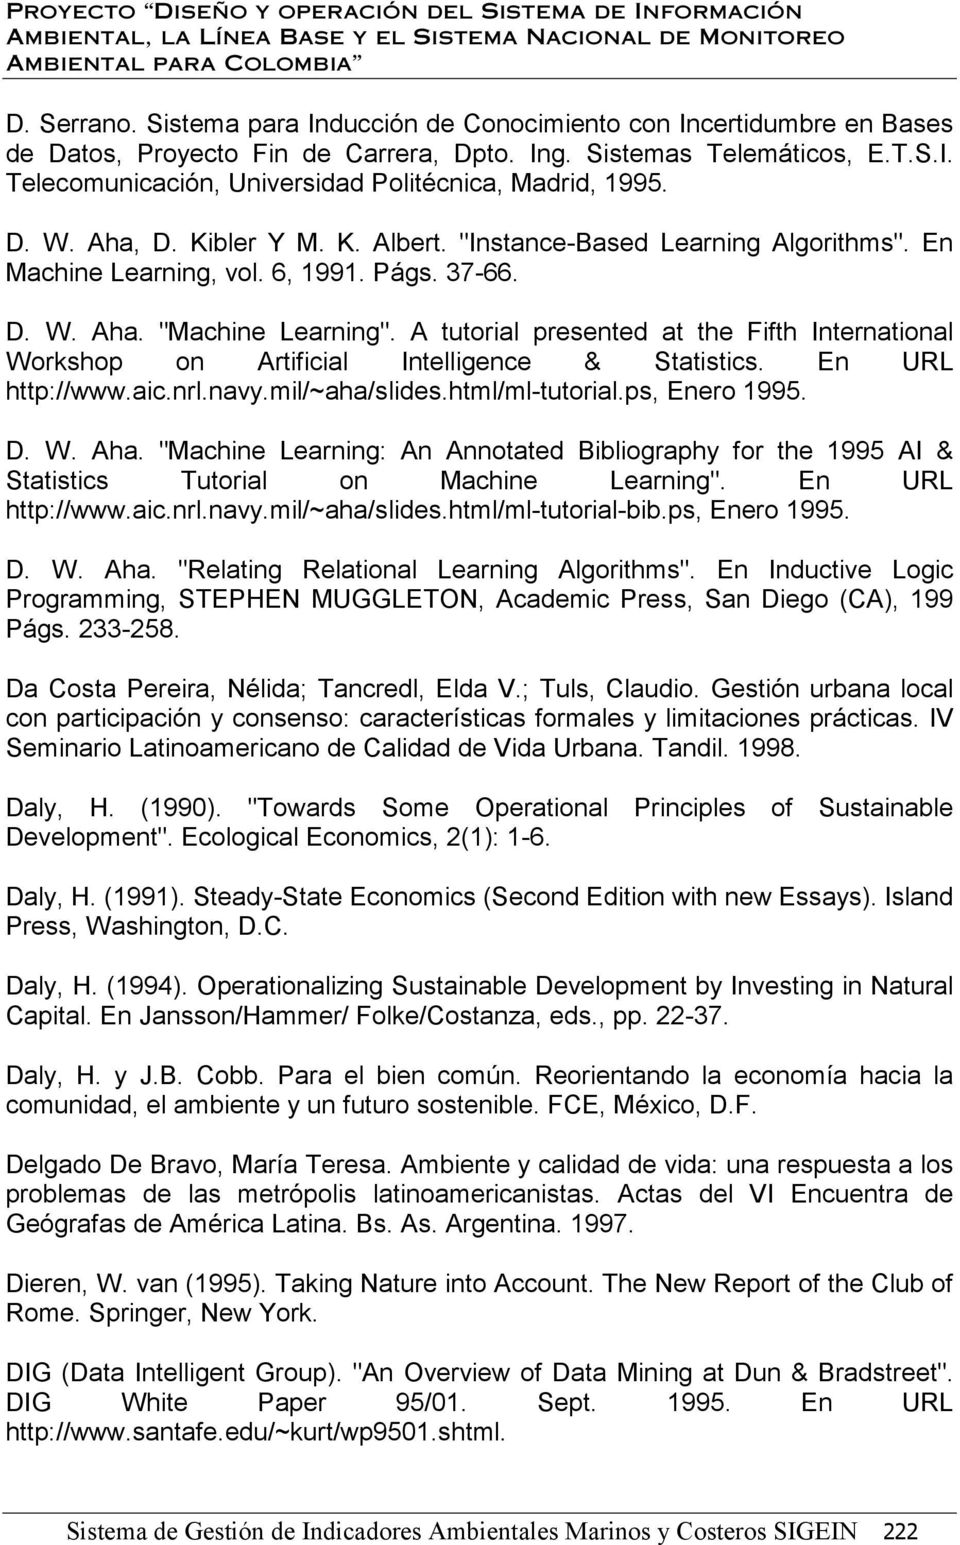 A tutorial presented at the Fifth International Workshop on Artificial Intelligence & Statistics. En URL http://www.aic.nrl.navy.mil/~aha/slides.html/ml-tutorial.ps, Enero 1995. D. W. Aha.